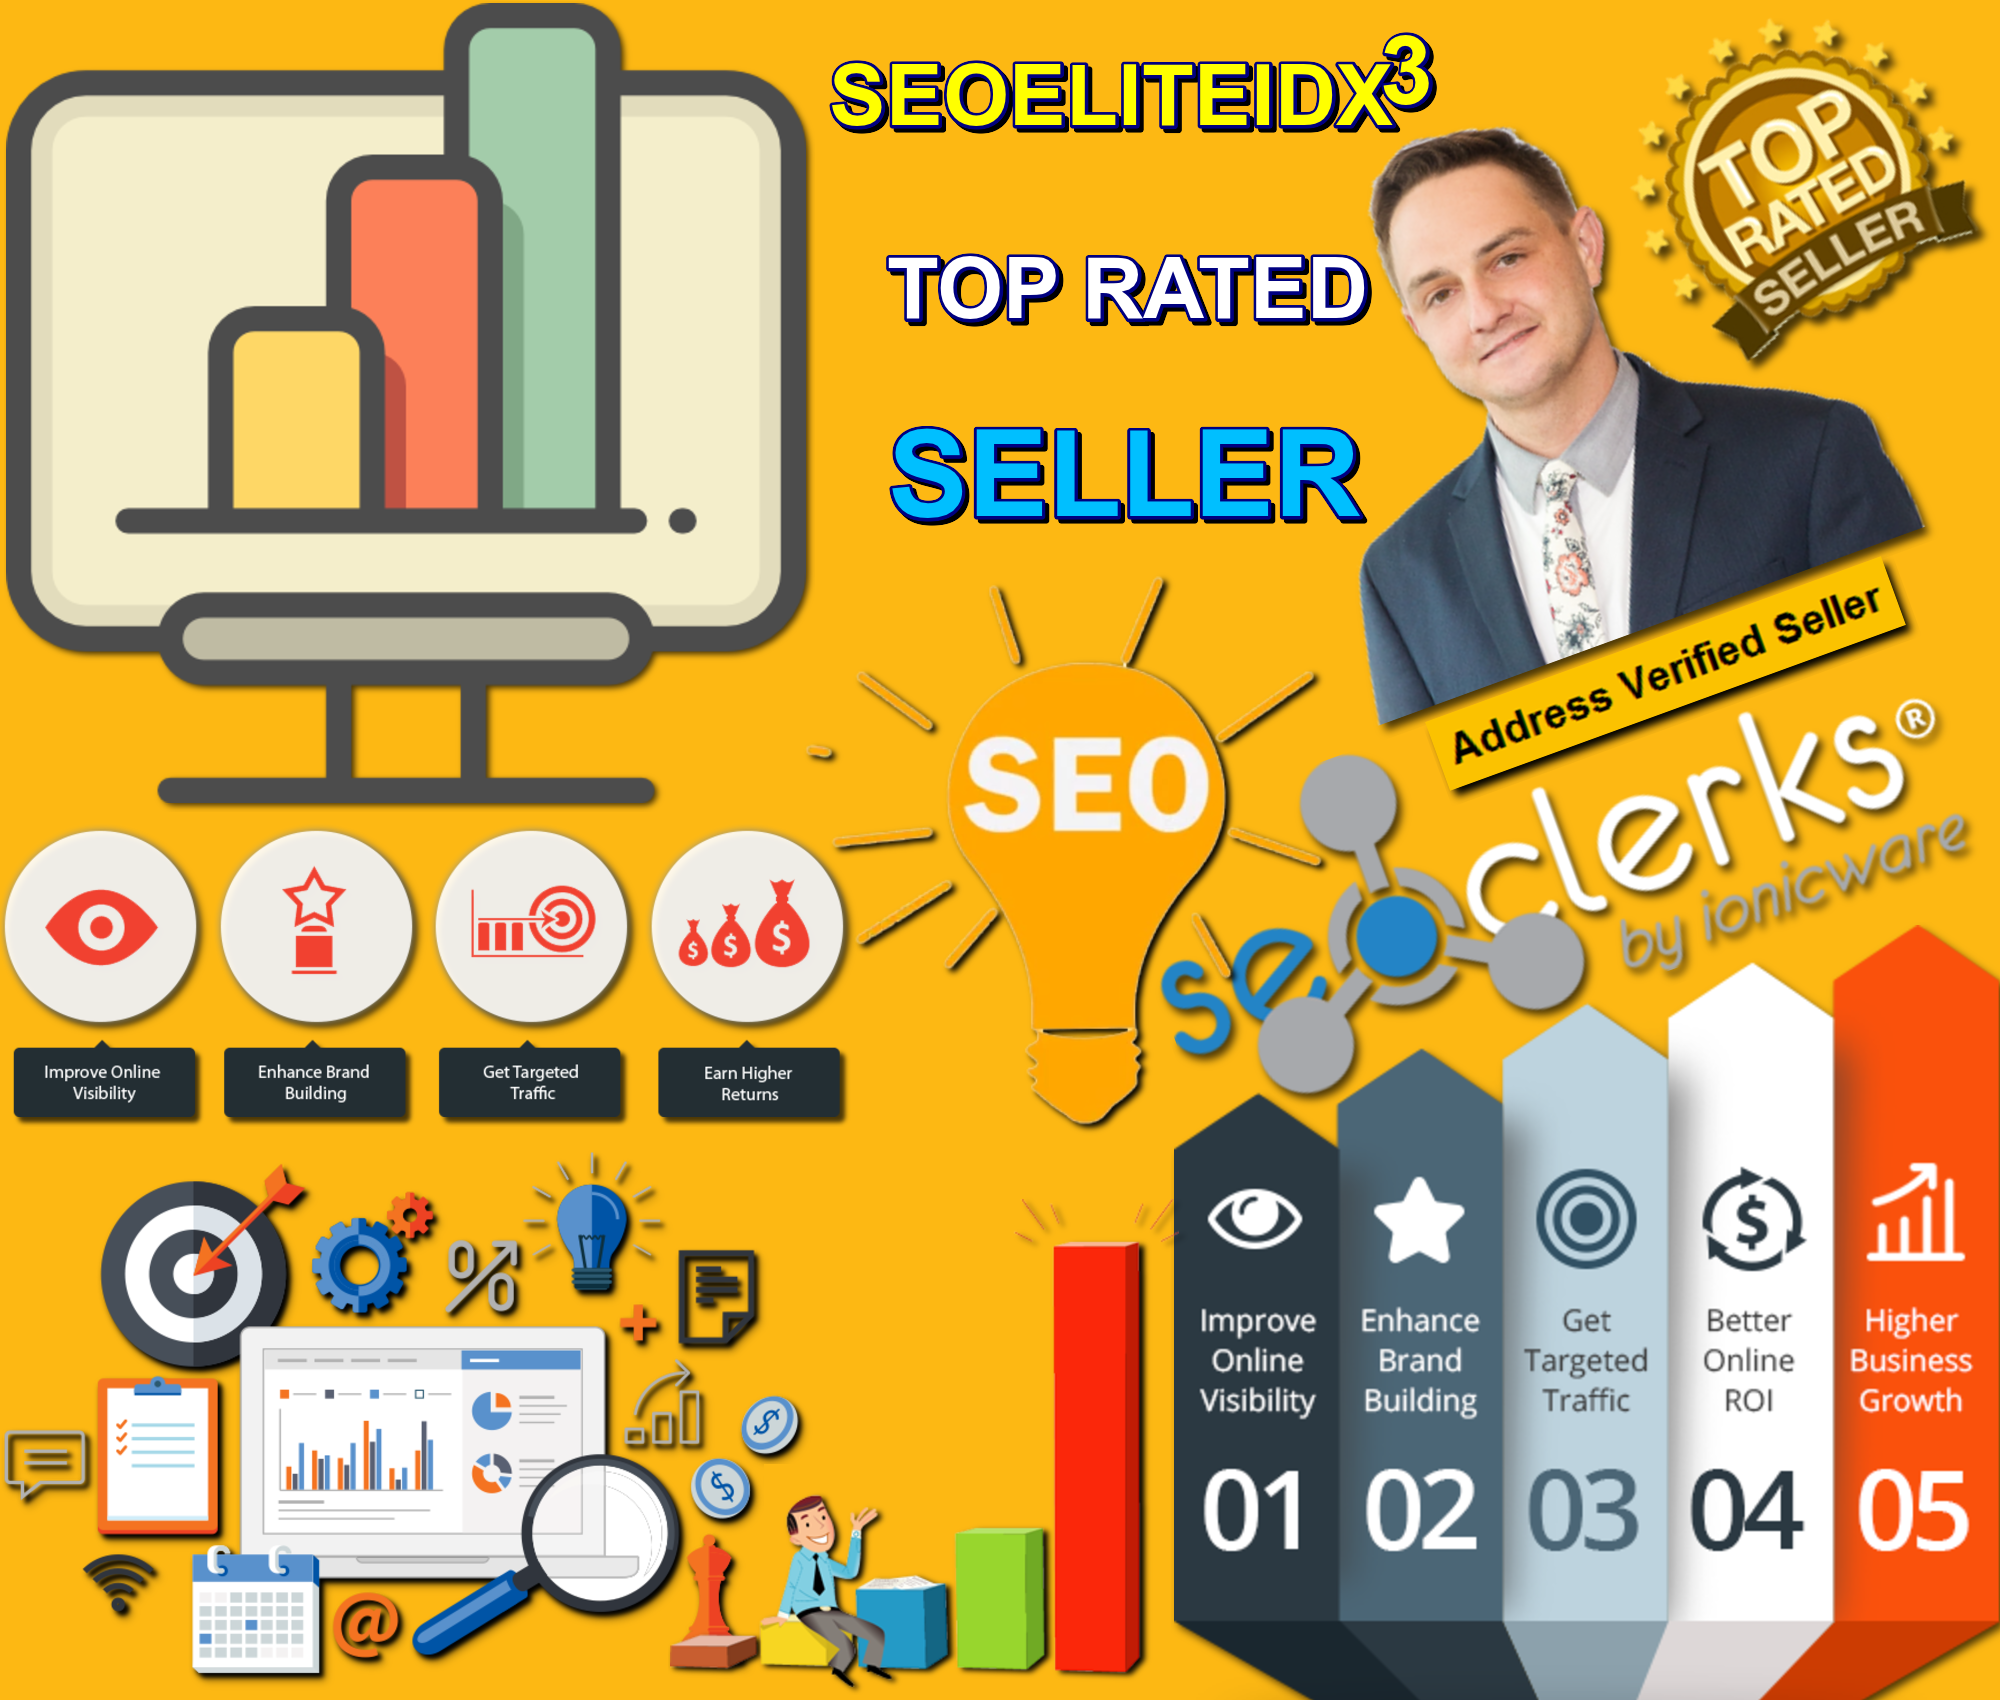 4 Million Worldwide USA Social Signal Traffic High Quality SEO Services Affiliate Marketing Business Promotion 100+ Million People Social Media Group AdSense Safe Boost Help To Rank 1st Page On Google